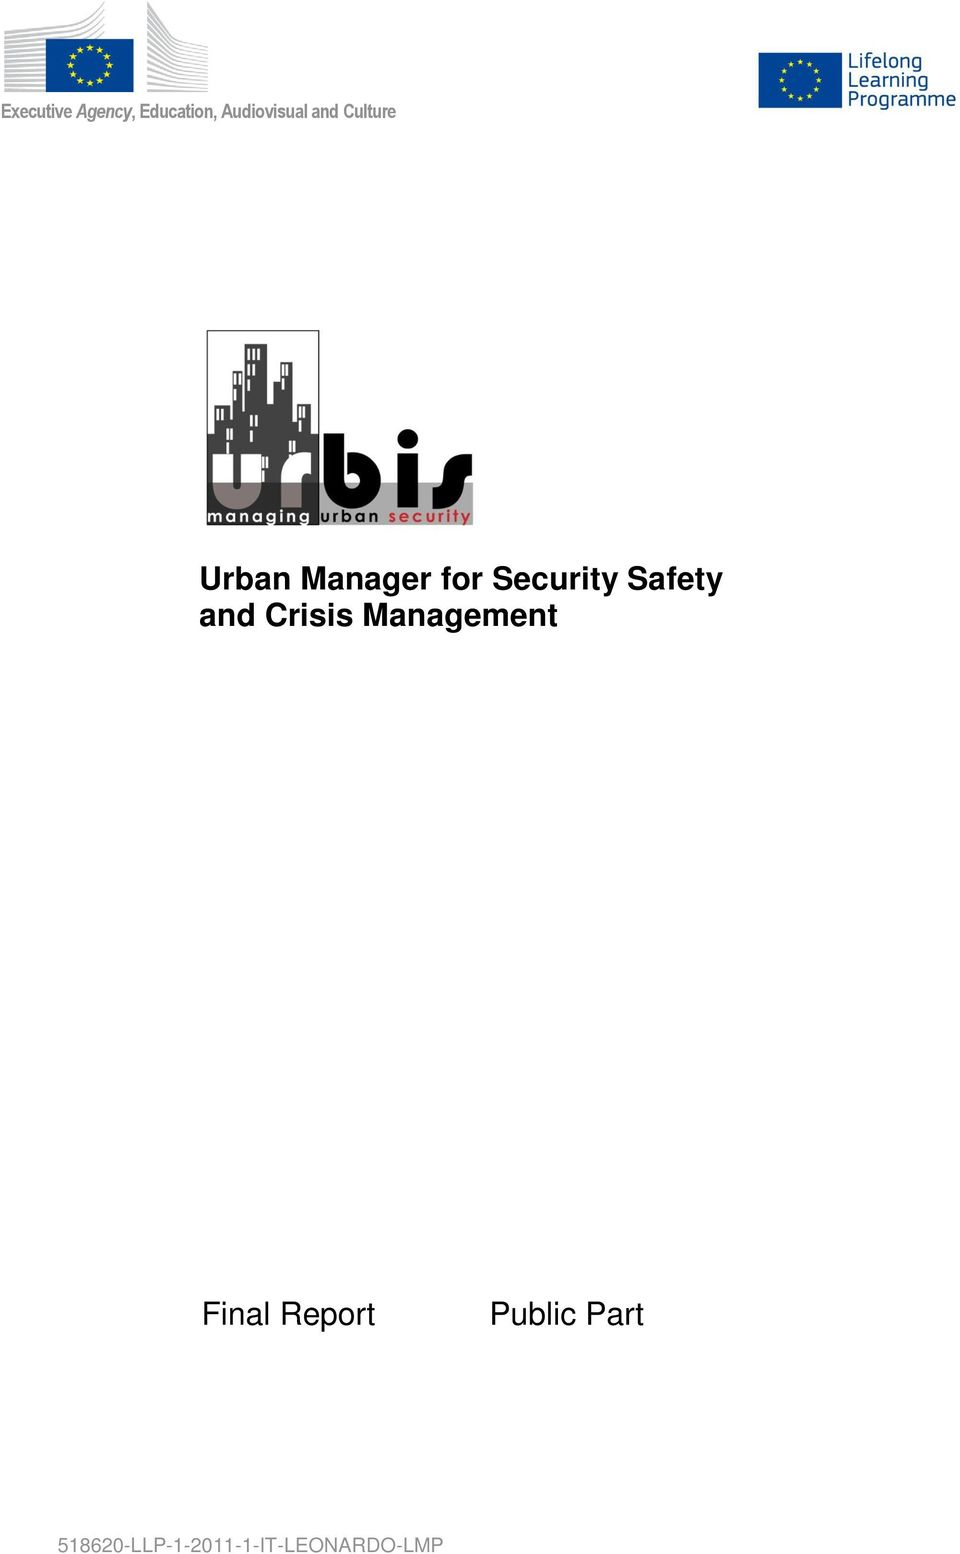 Safety and Crisis Management Final Report